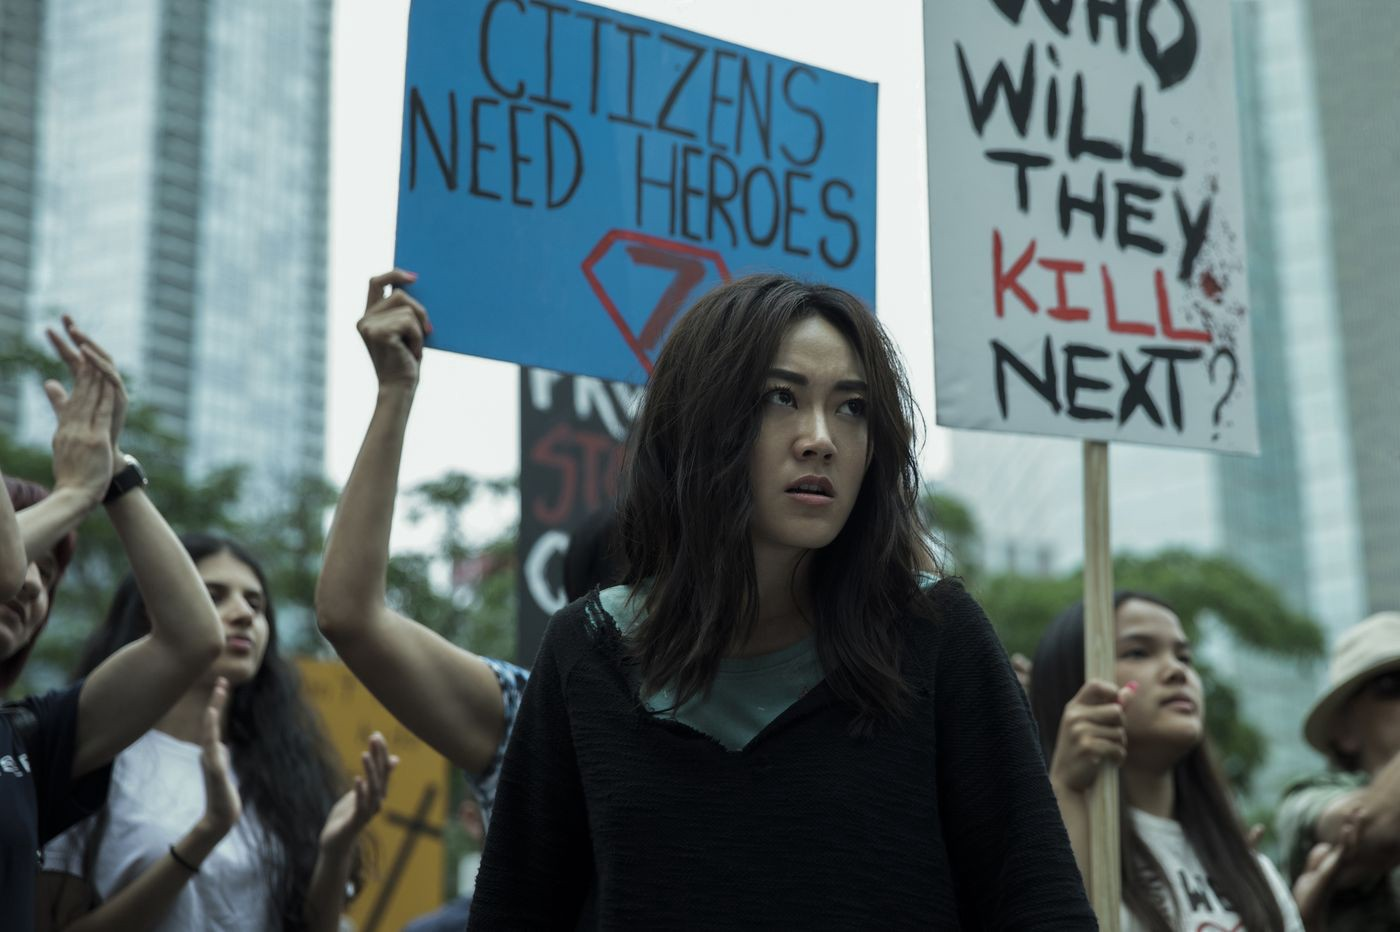 Kimiko at an anti-supe protest, The Boys, Season 2, she wants revenge on Stormfront for murdering her brother.